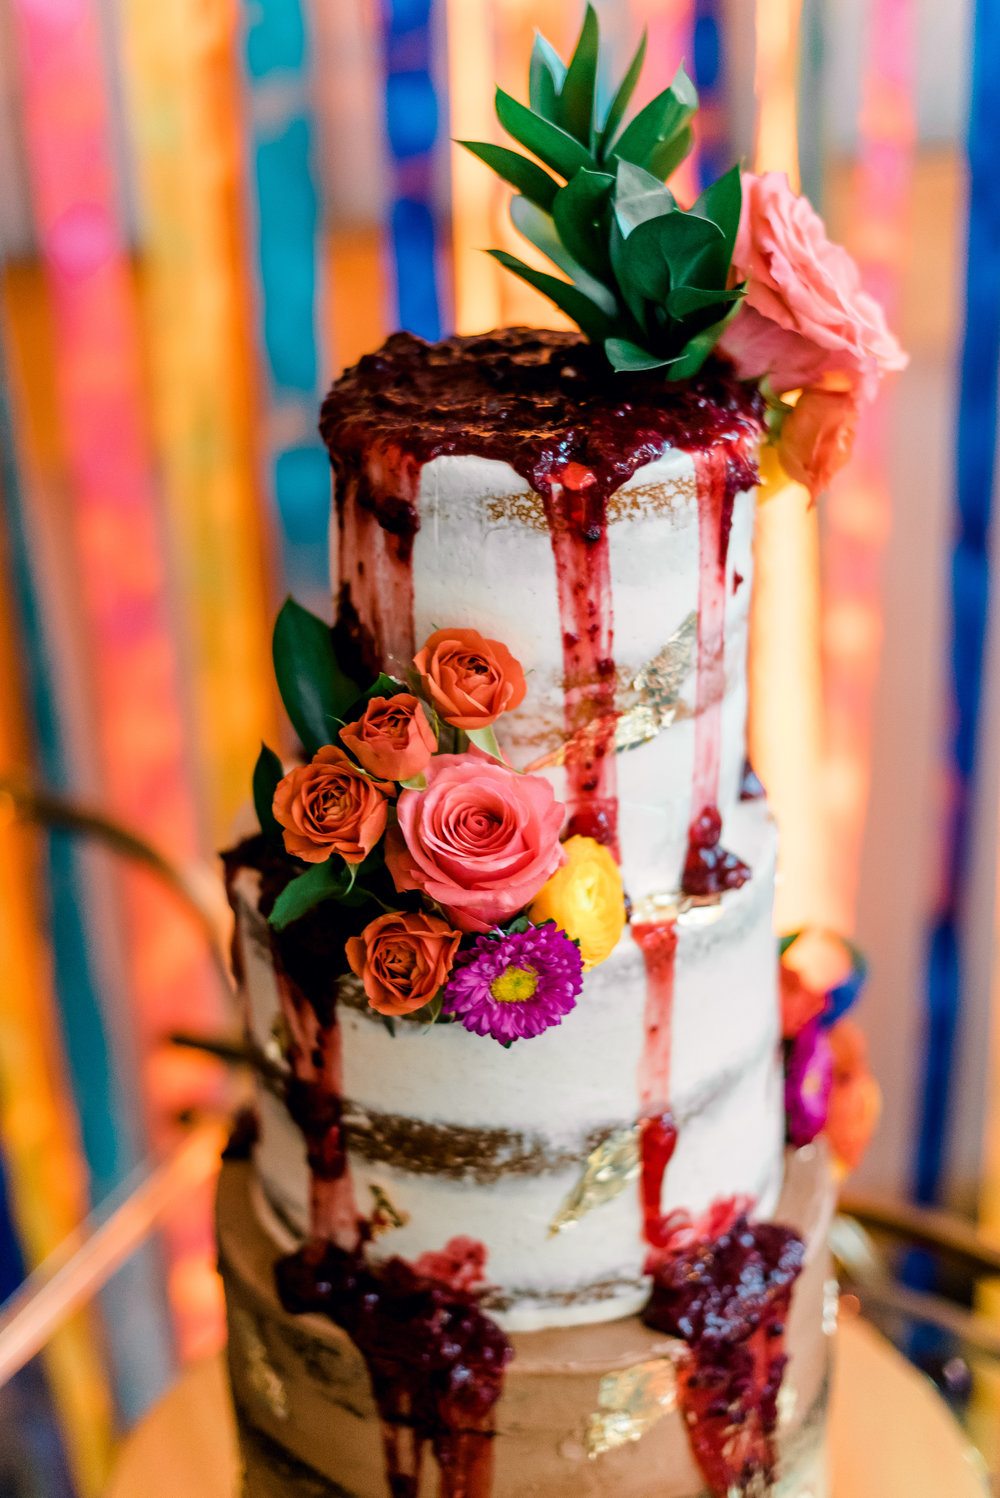 Naked Cake with Gold Foil.jpg